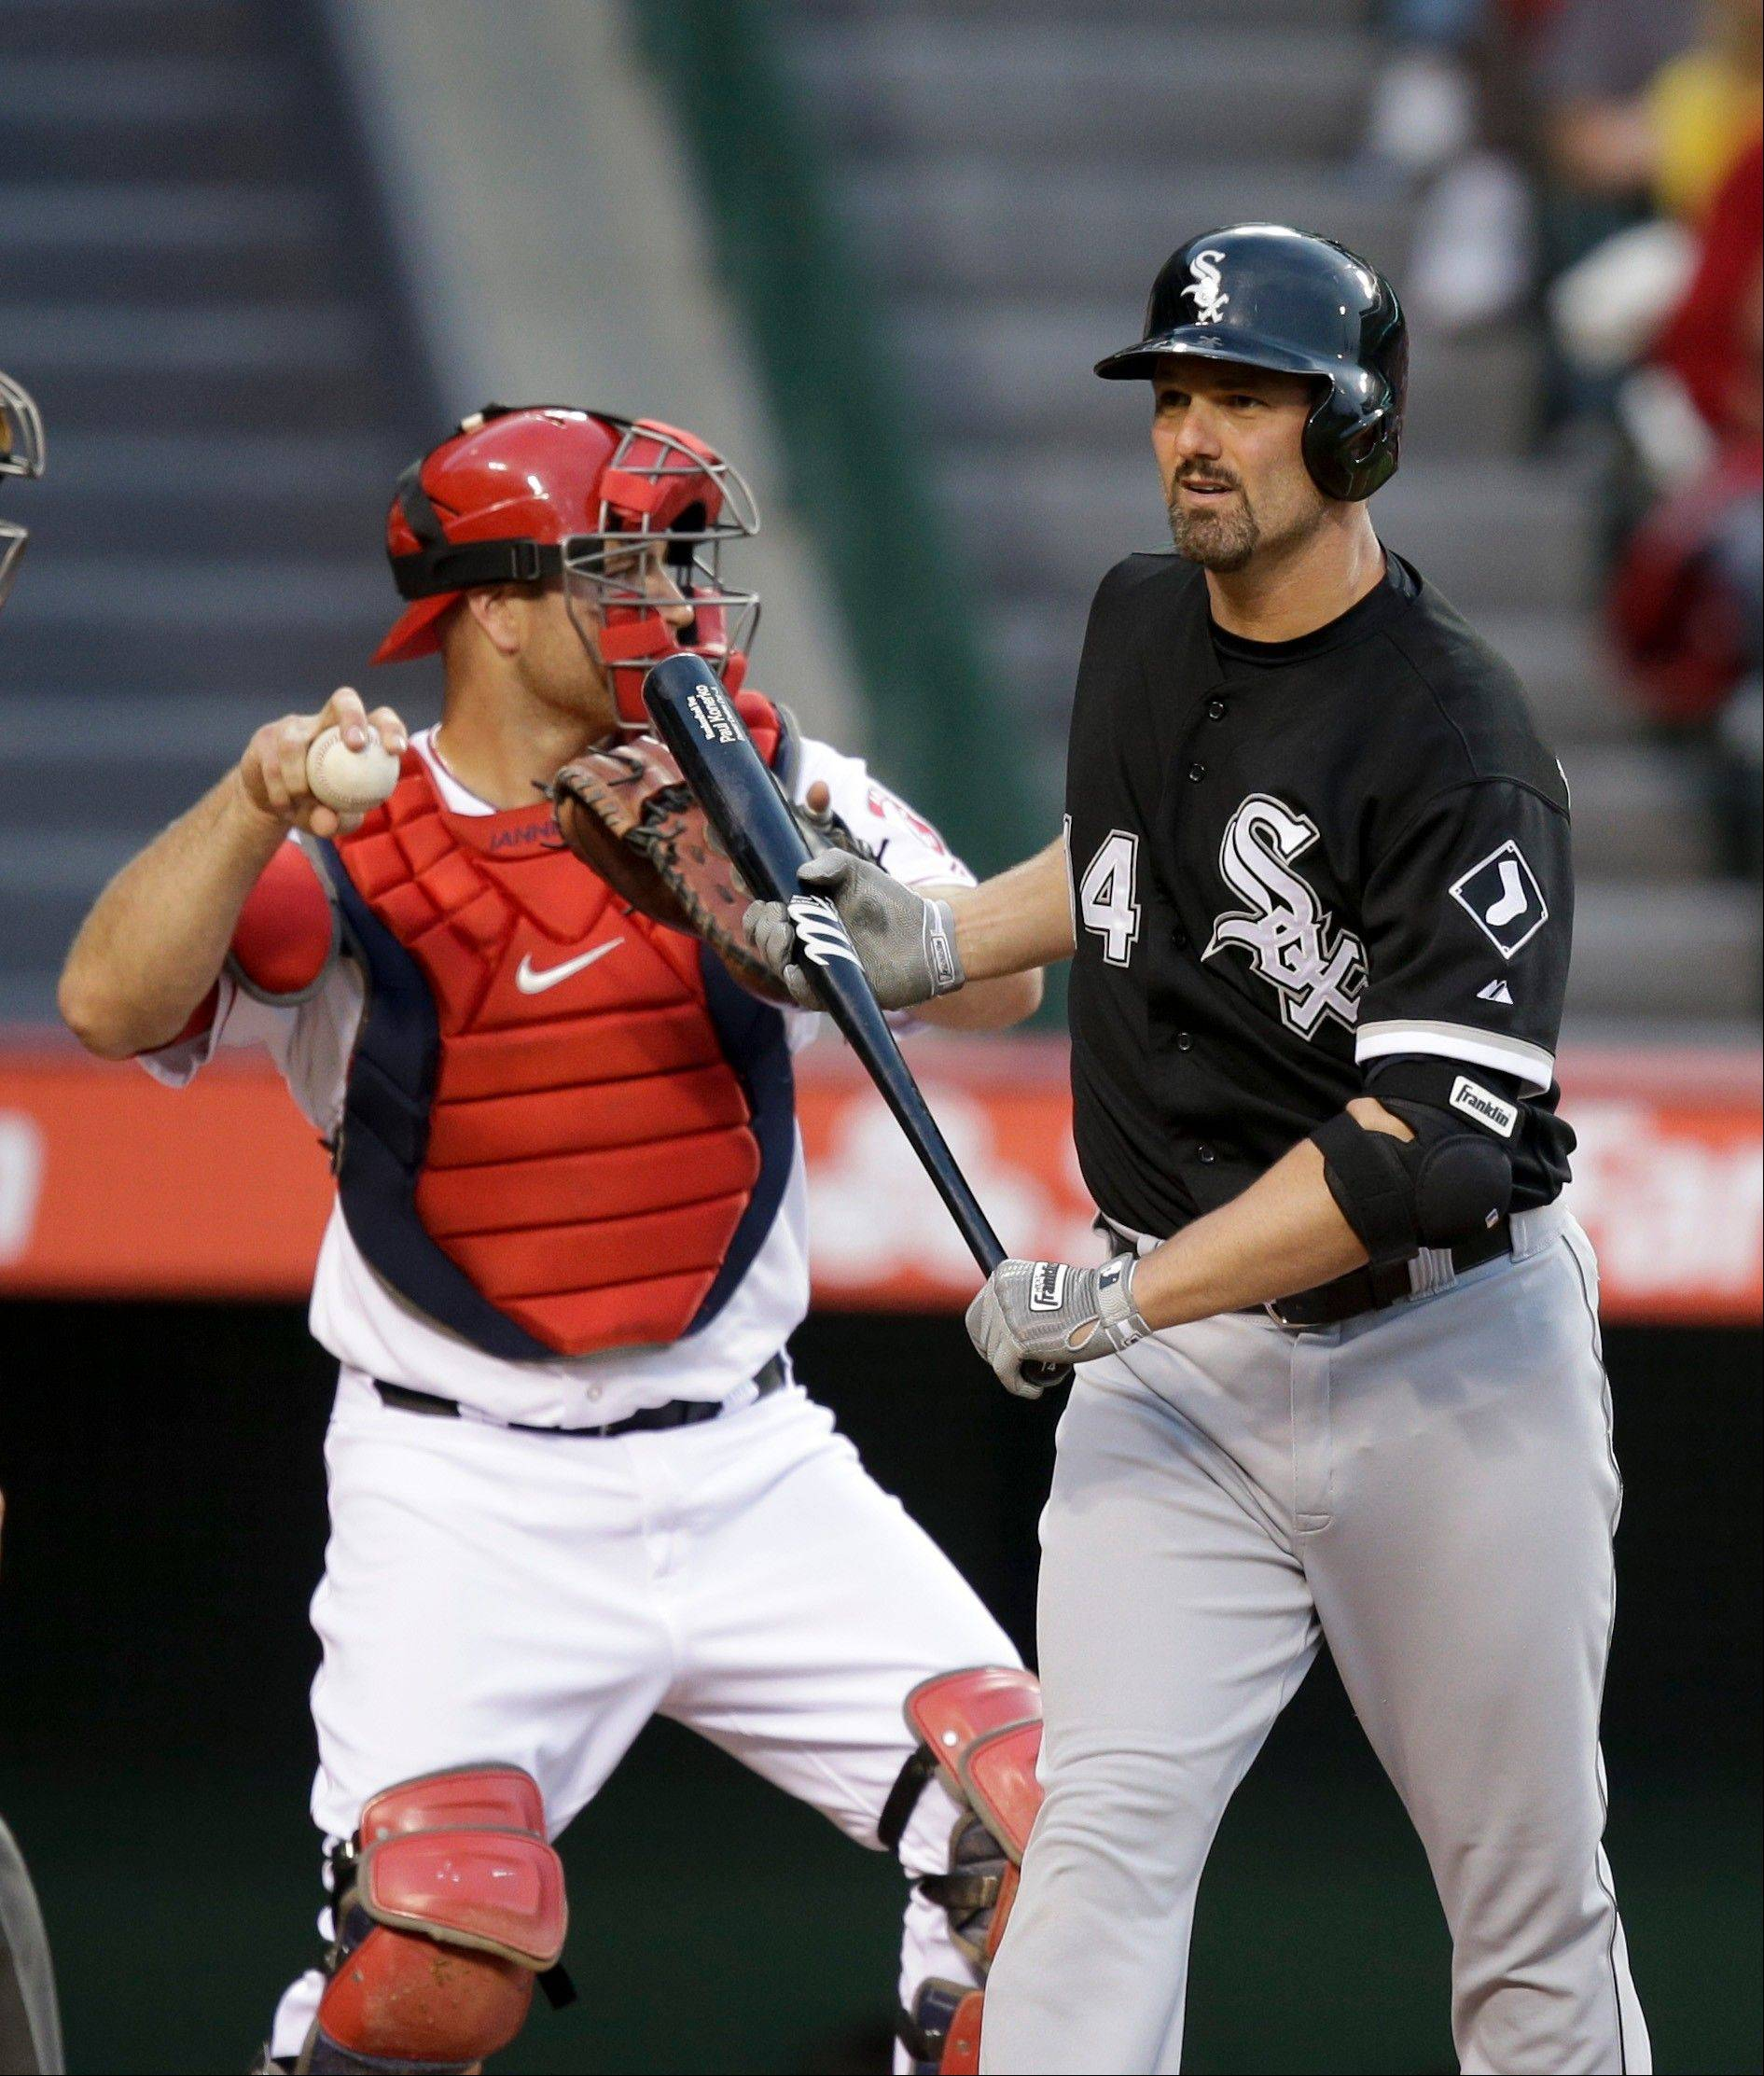 Chris Rongey: White Sox' offense going to need Konerko